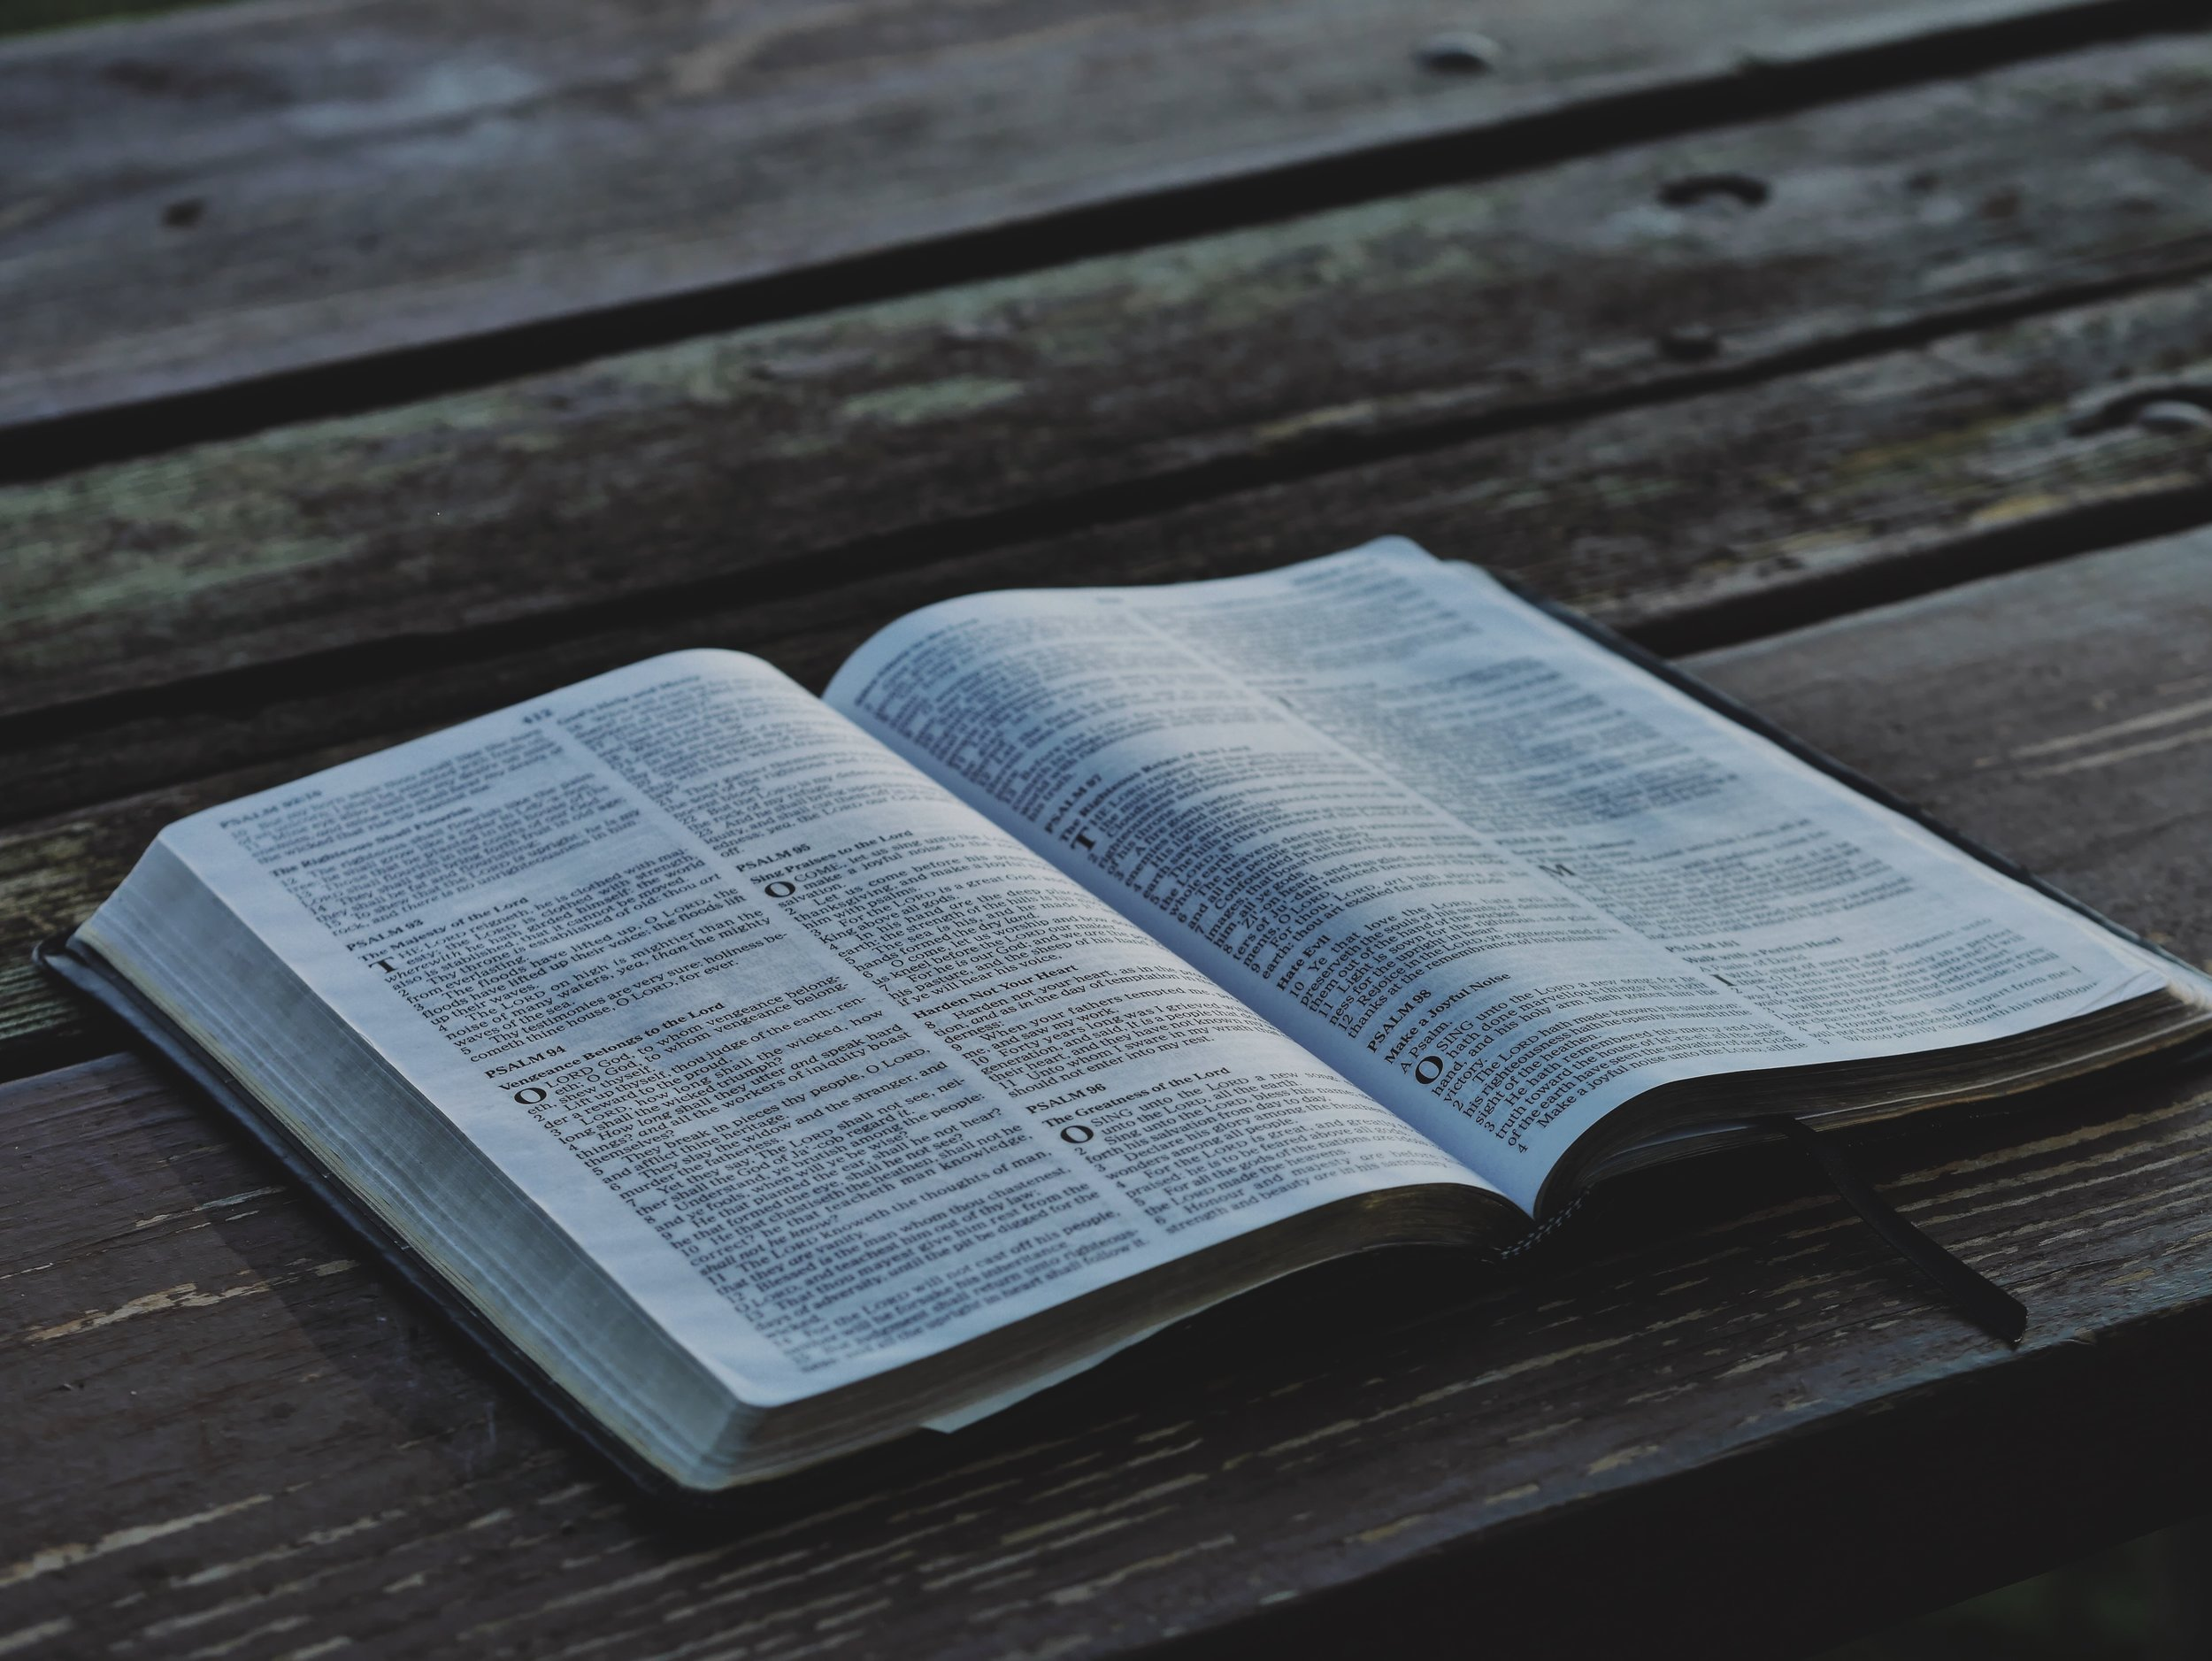 """SCRIPTURE - We hold to a high view of scripture, which affirms the doctrines of inerrancy, inspiration, and infallibility. We affirm the Reformation declaration of """"SOLA SCRIPTURA"""" and believe that Scripture holds the final authority over the Church and our lives."""